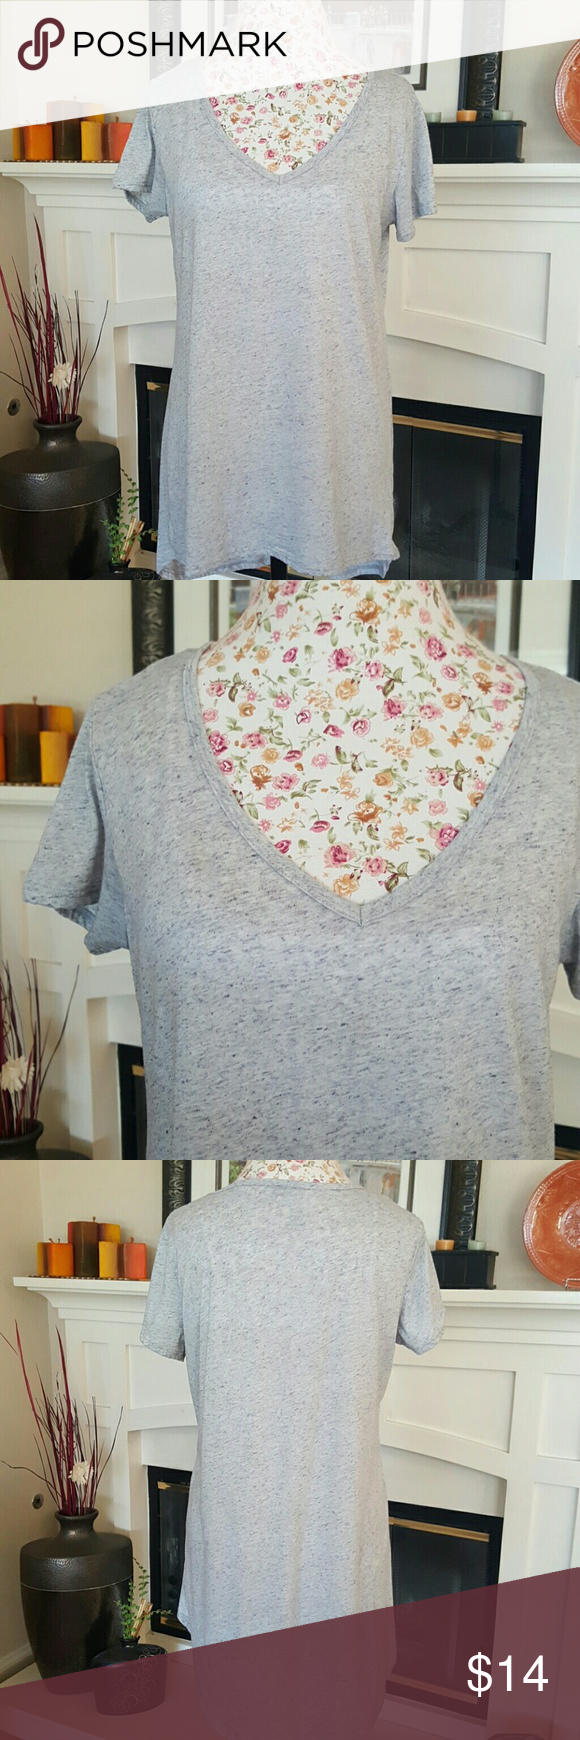 COTTON ON Top Perfect to pair with leggings, scarf and boots! Long tunic style. Very comfortable! Open to offers. Cotton On Tops